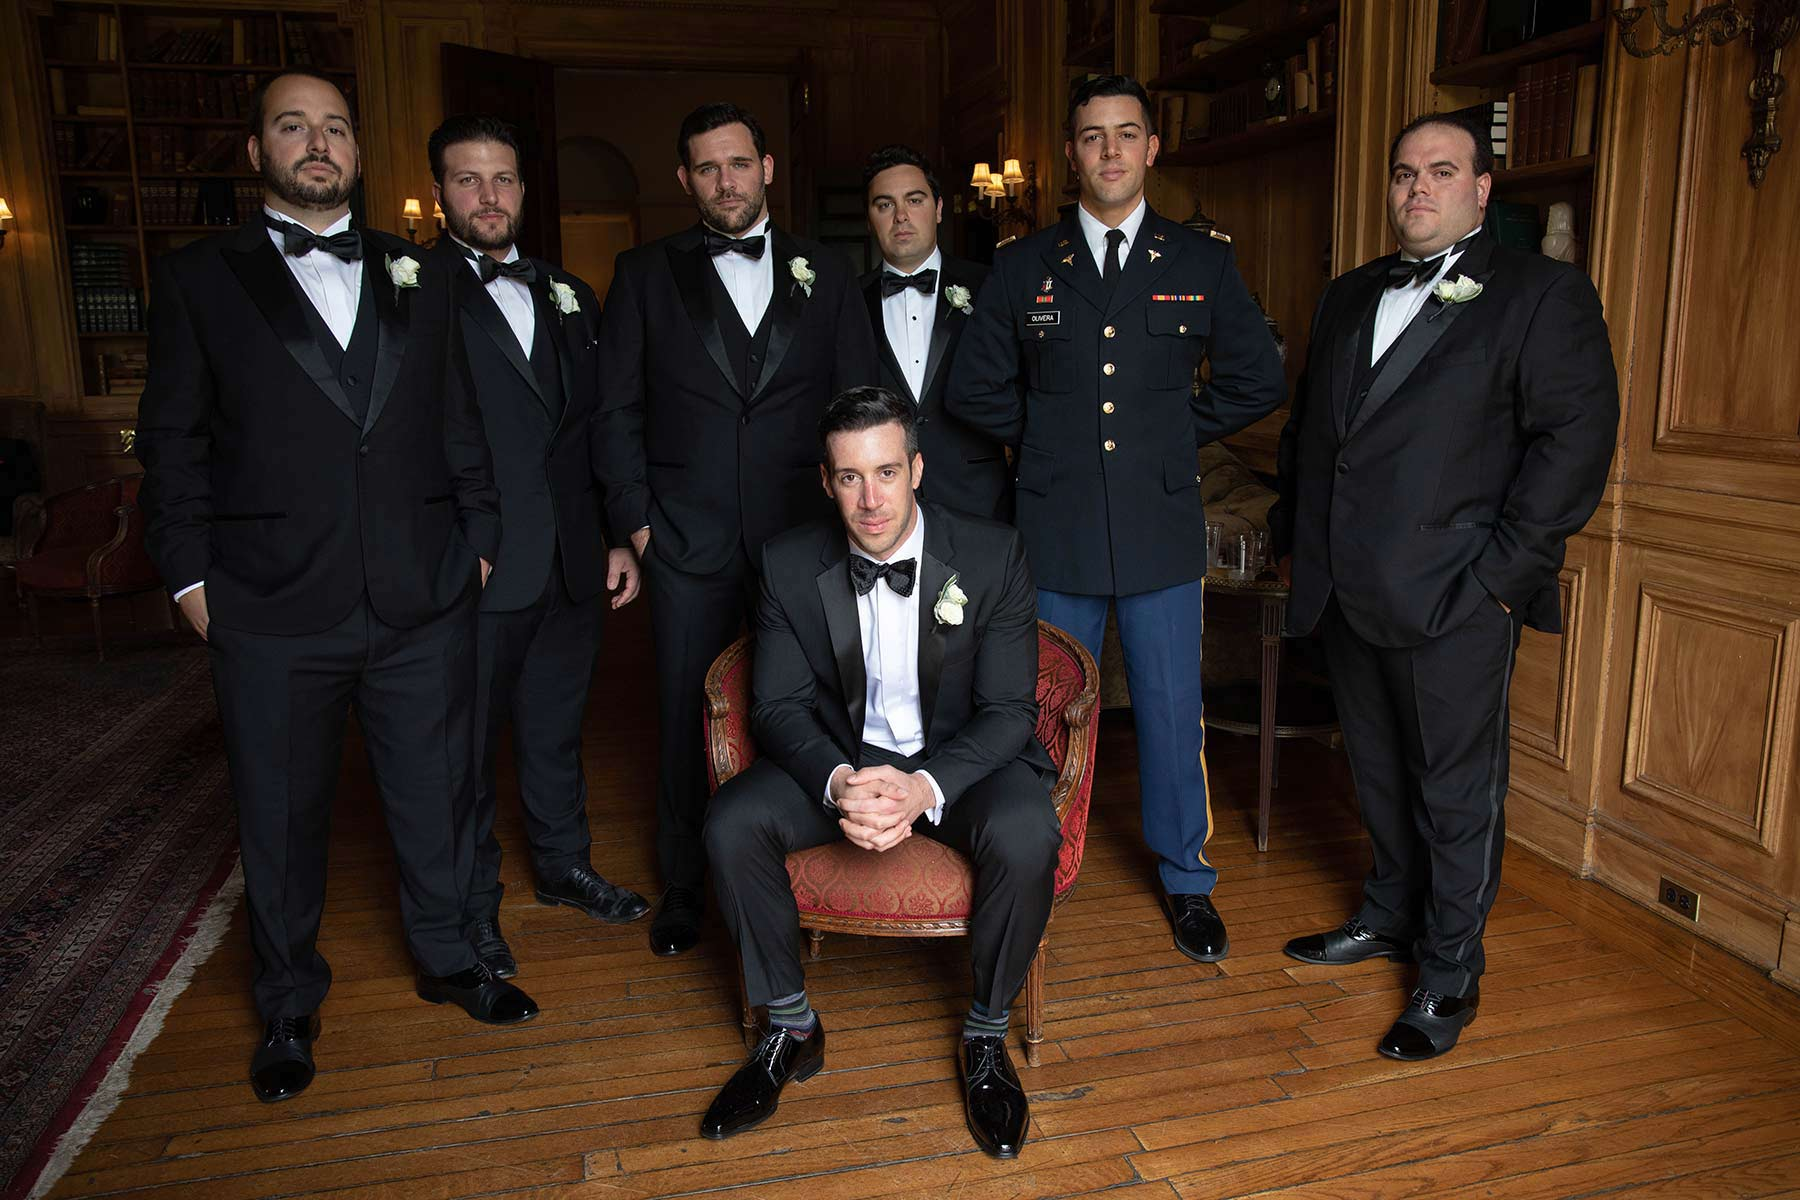 06_Groom_and_groomsmen_post_at_Oheka_castle.jpg